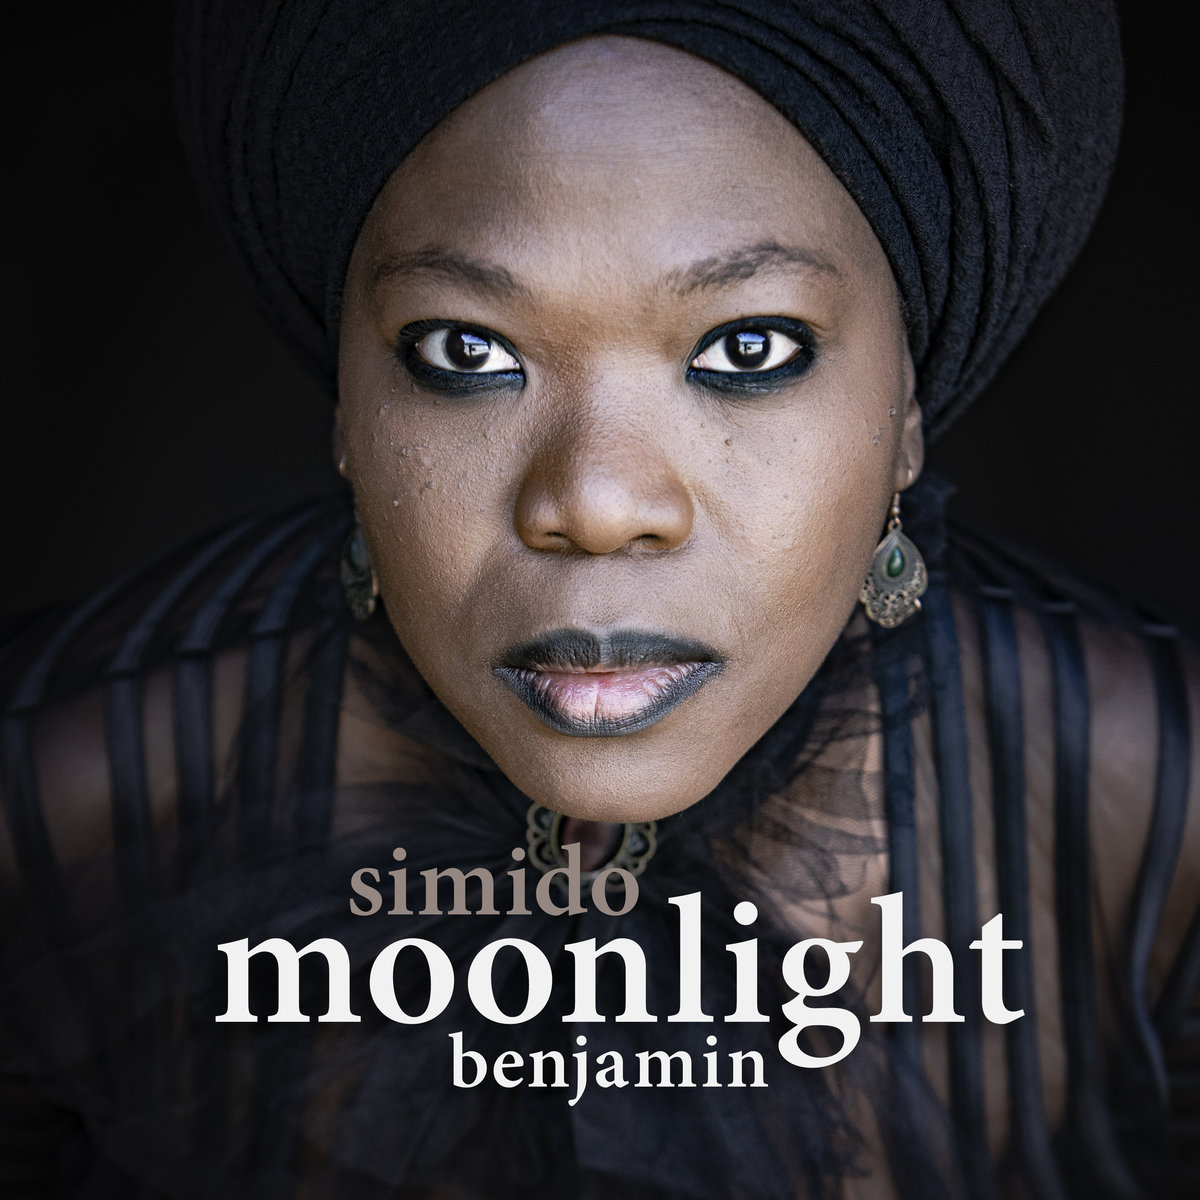 Moonlight Benjamin – Simido